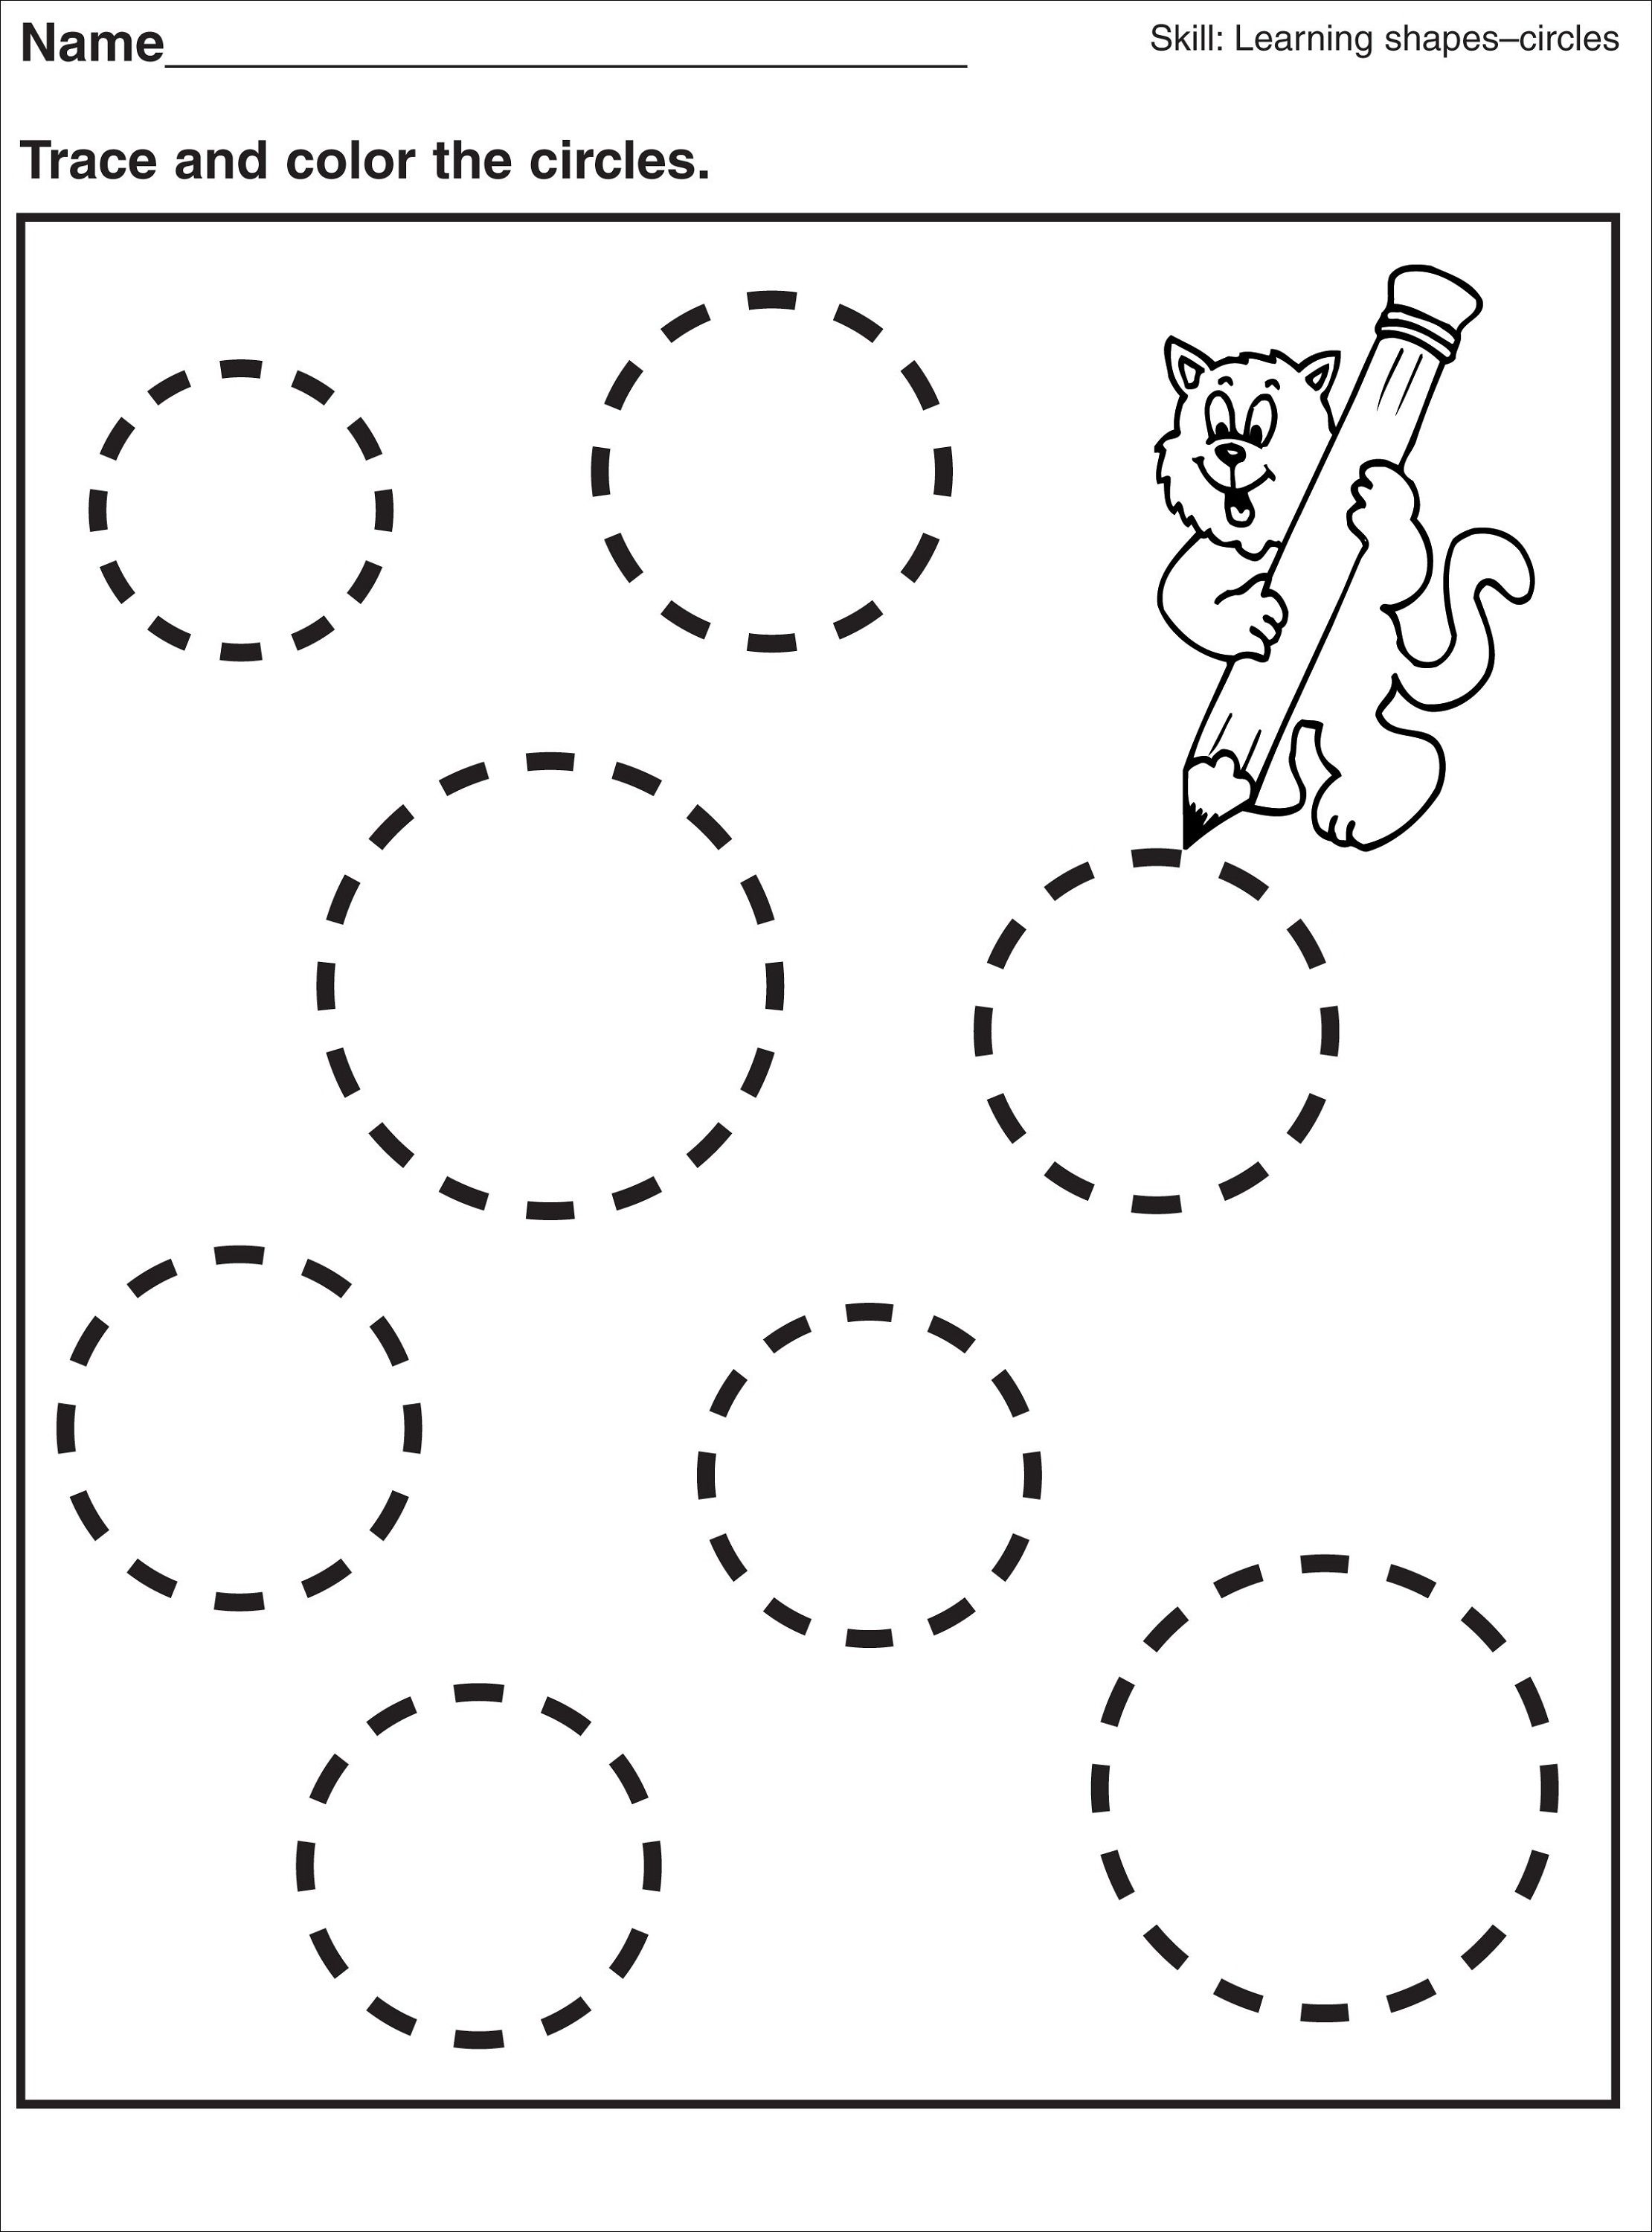 Tracing Circle Worksheets For Preschool Activity Shelter Kids